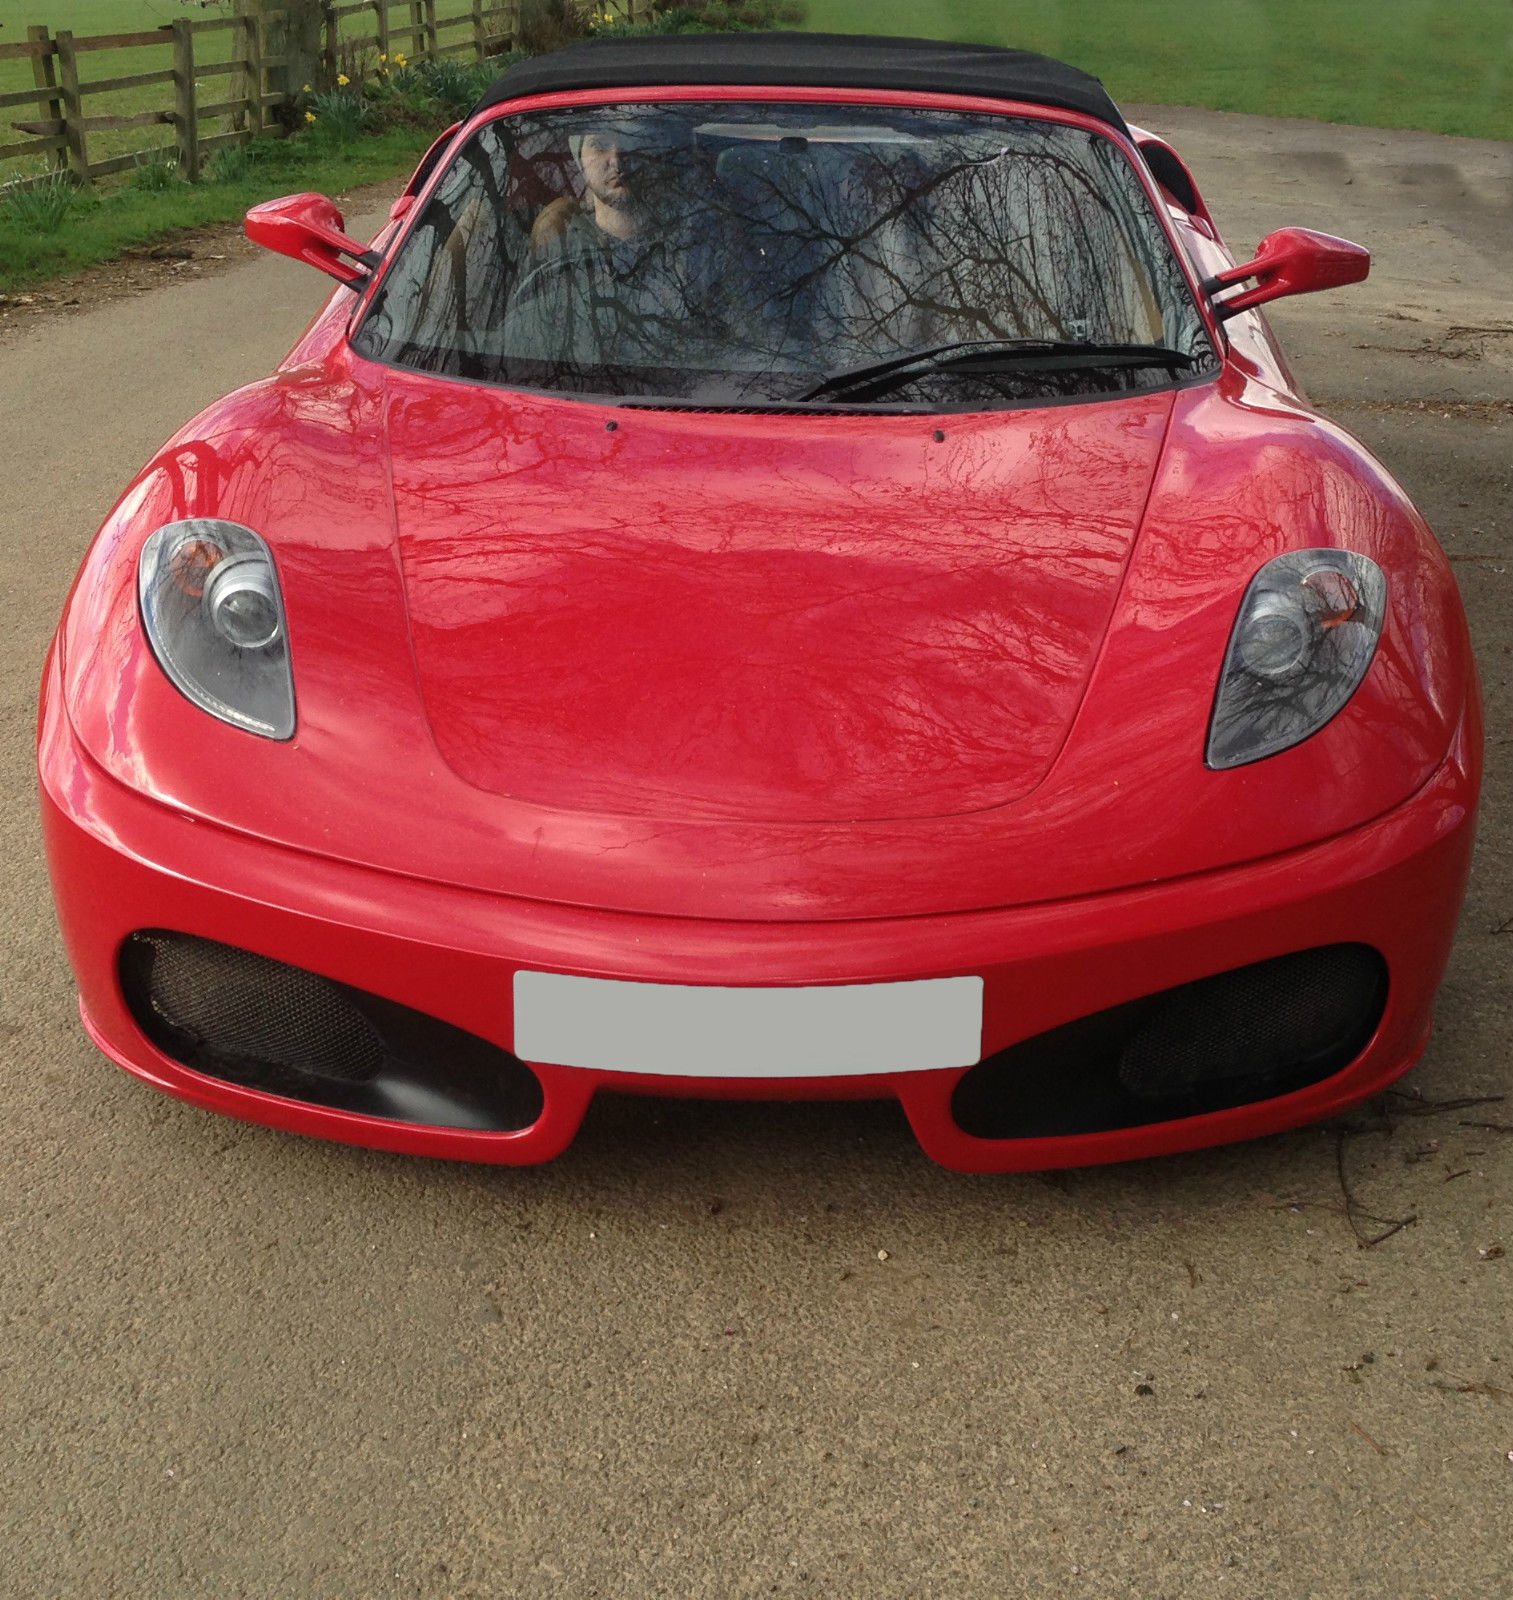 Ferrari Kit Car Mr2 Toyota Mk2 Bodykit Gta Gtb Available With Kits